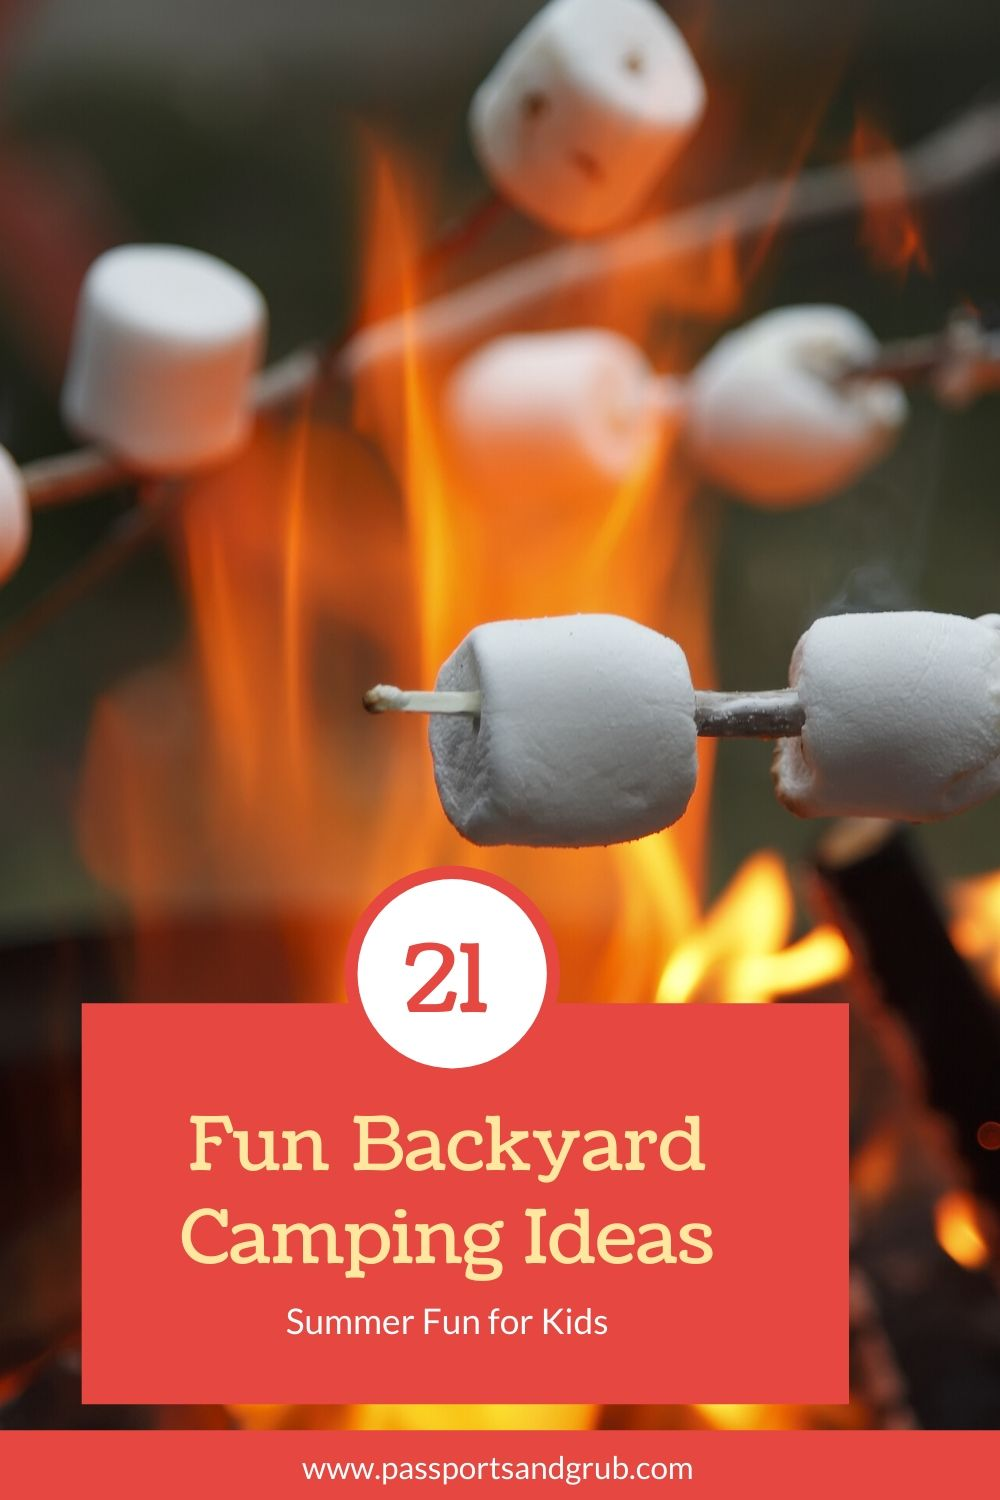 Backyard Camping Ideas for the kids